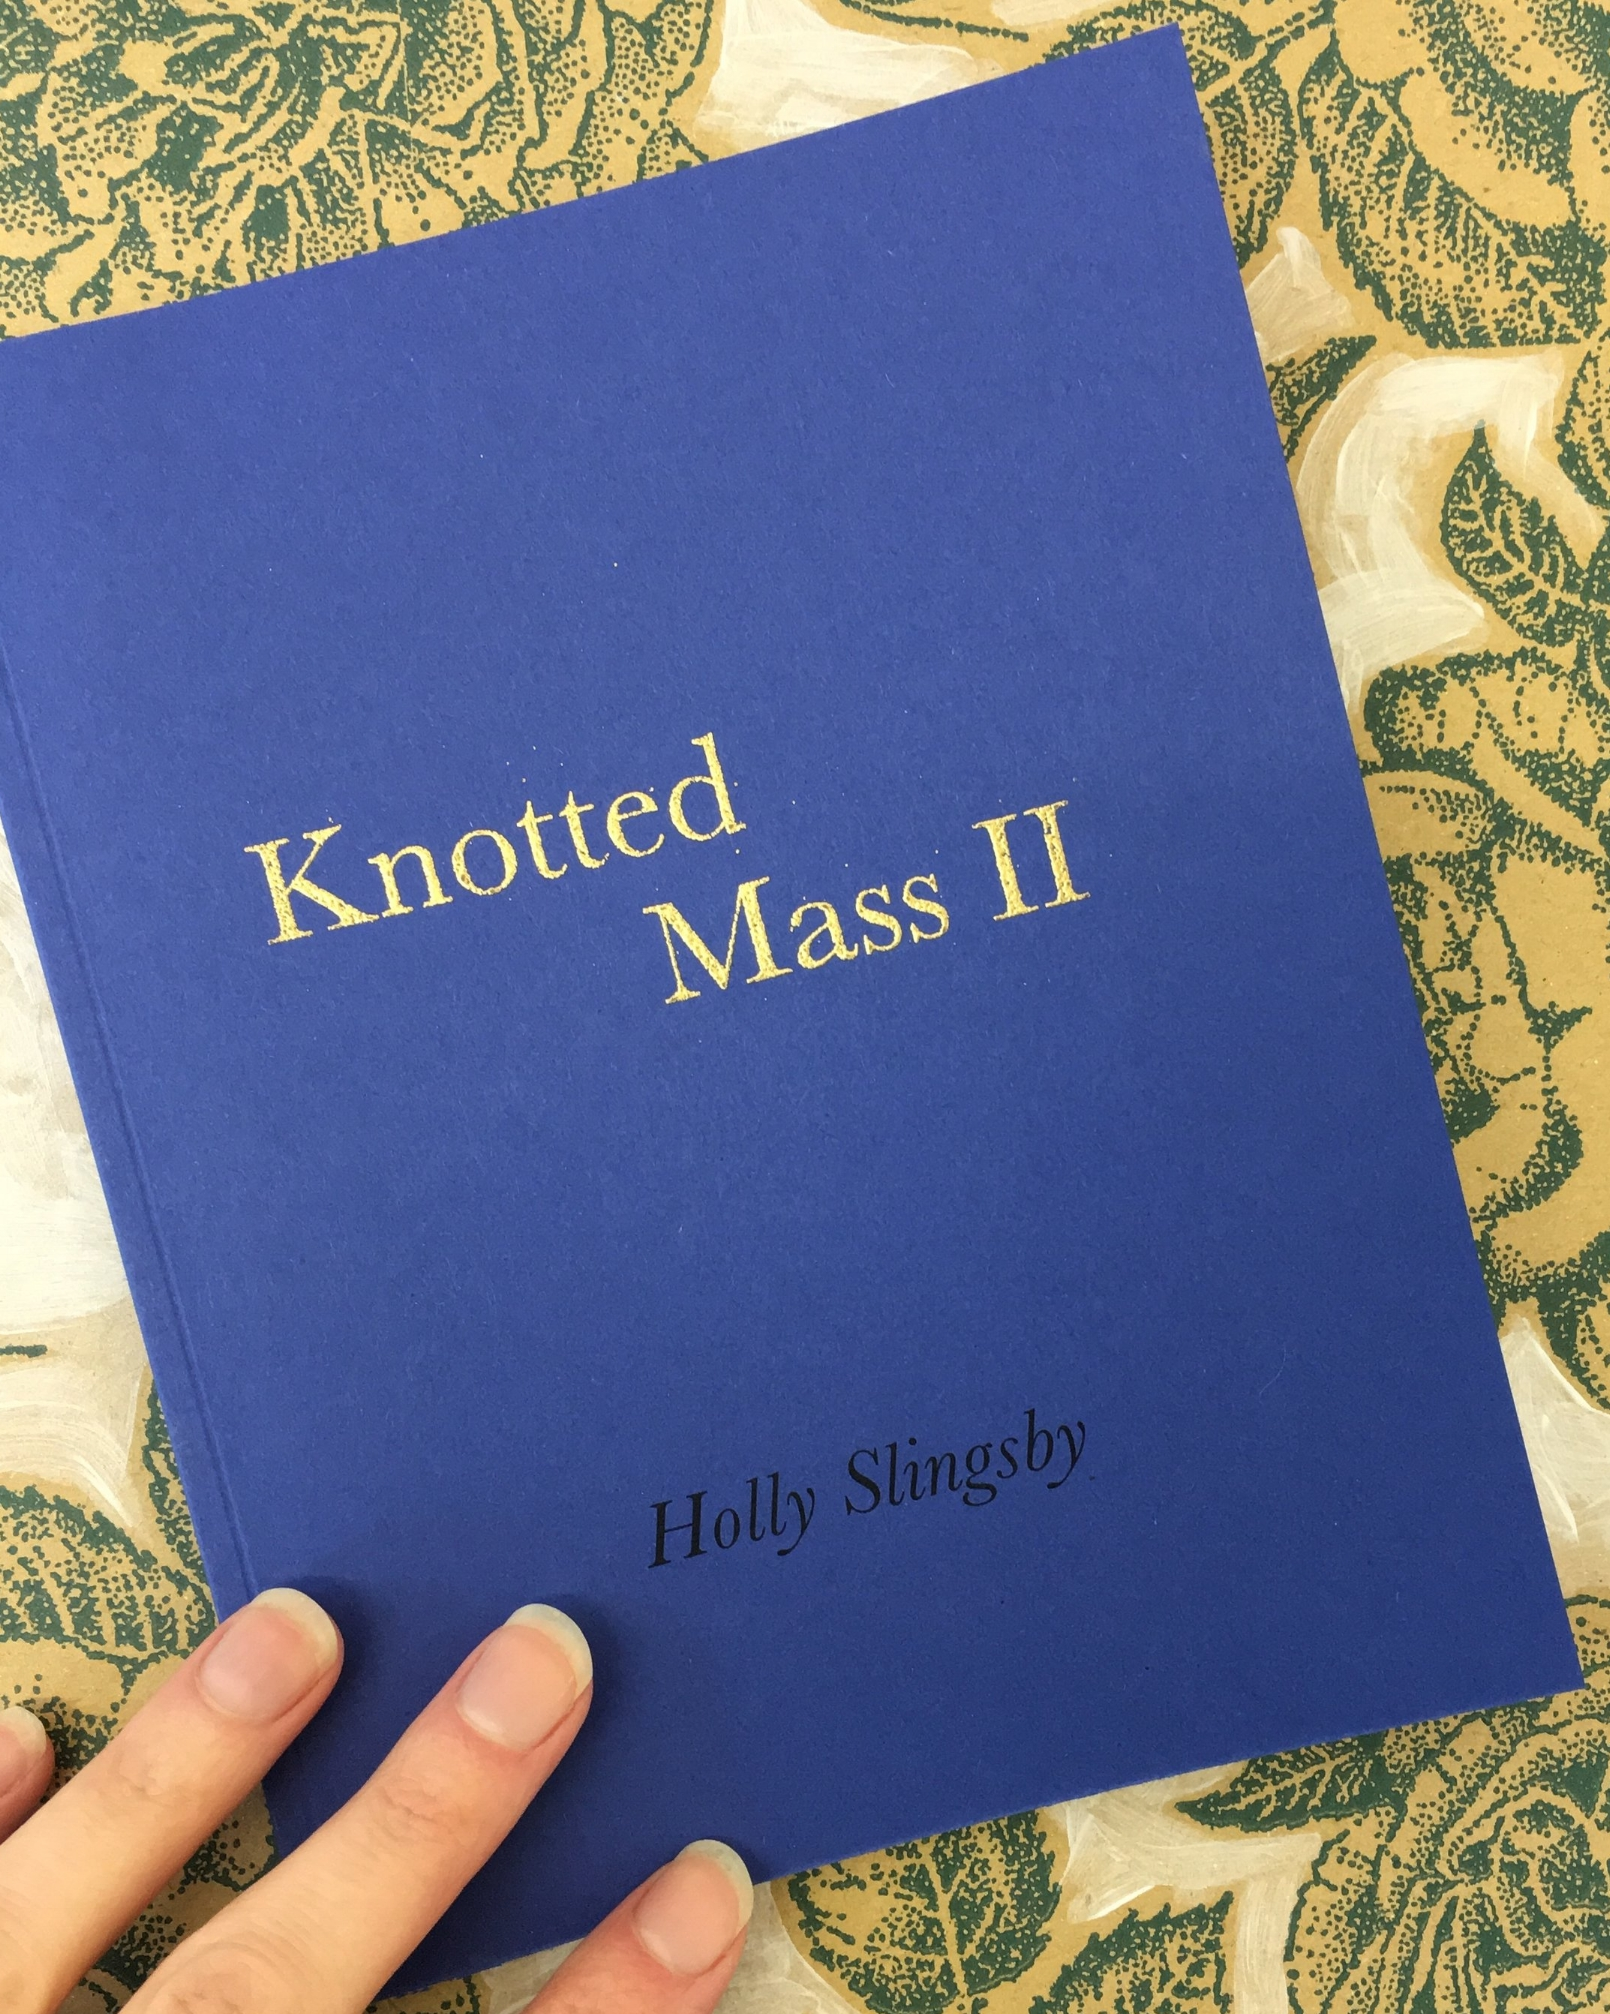 Knotted Mass II, 2018